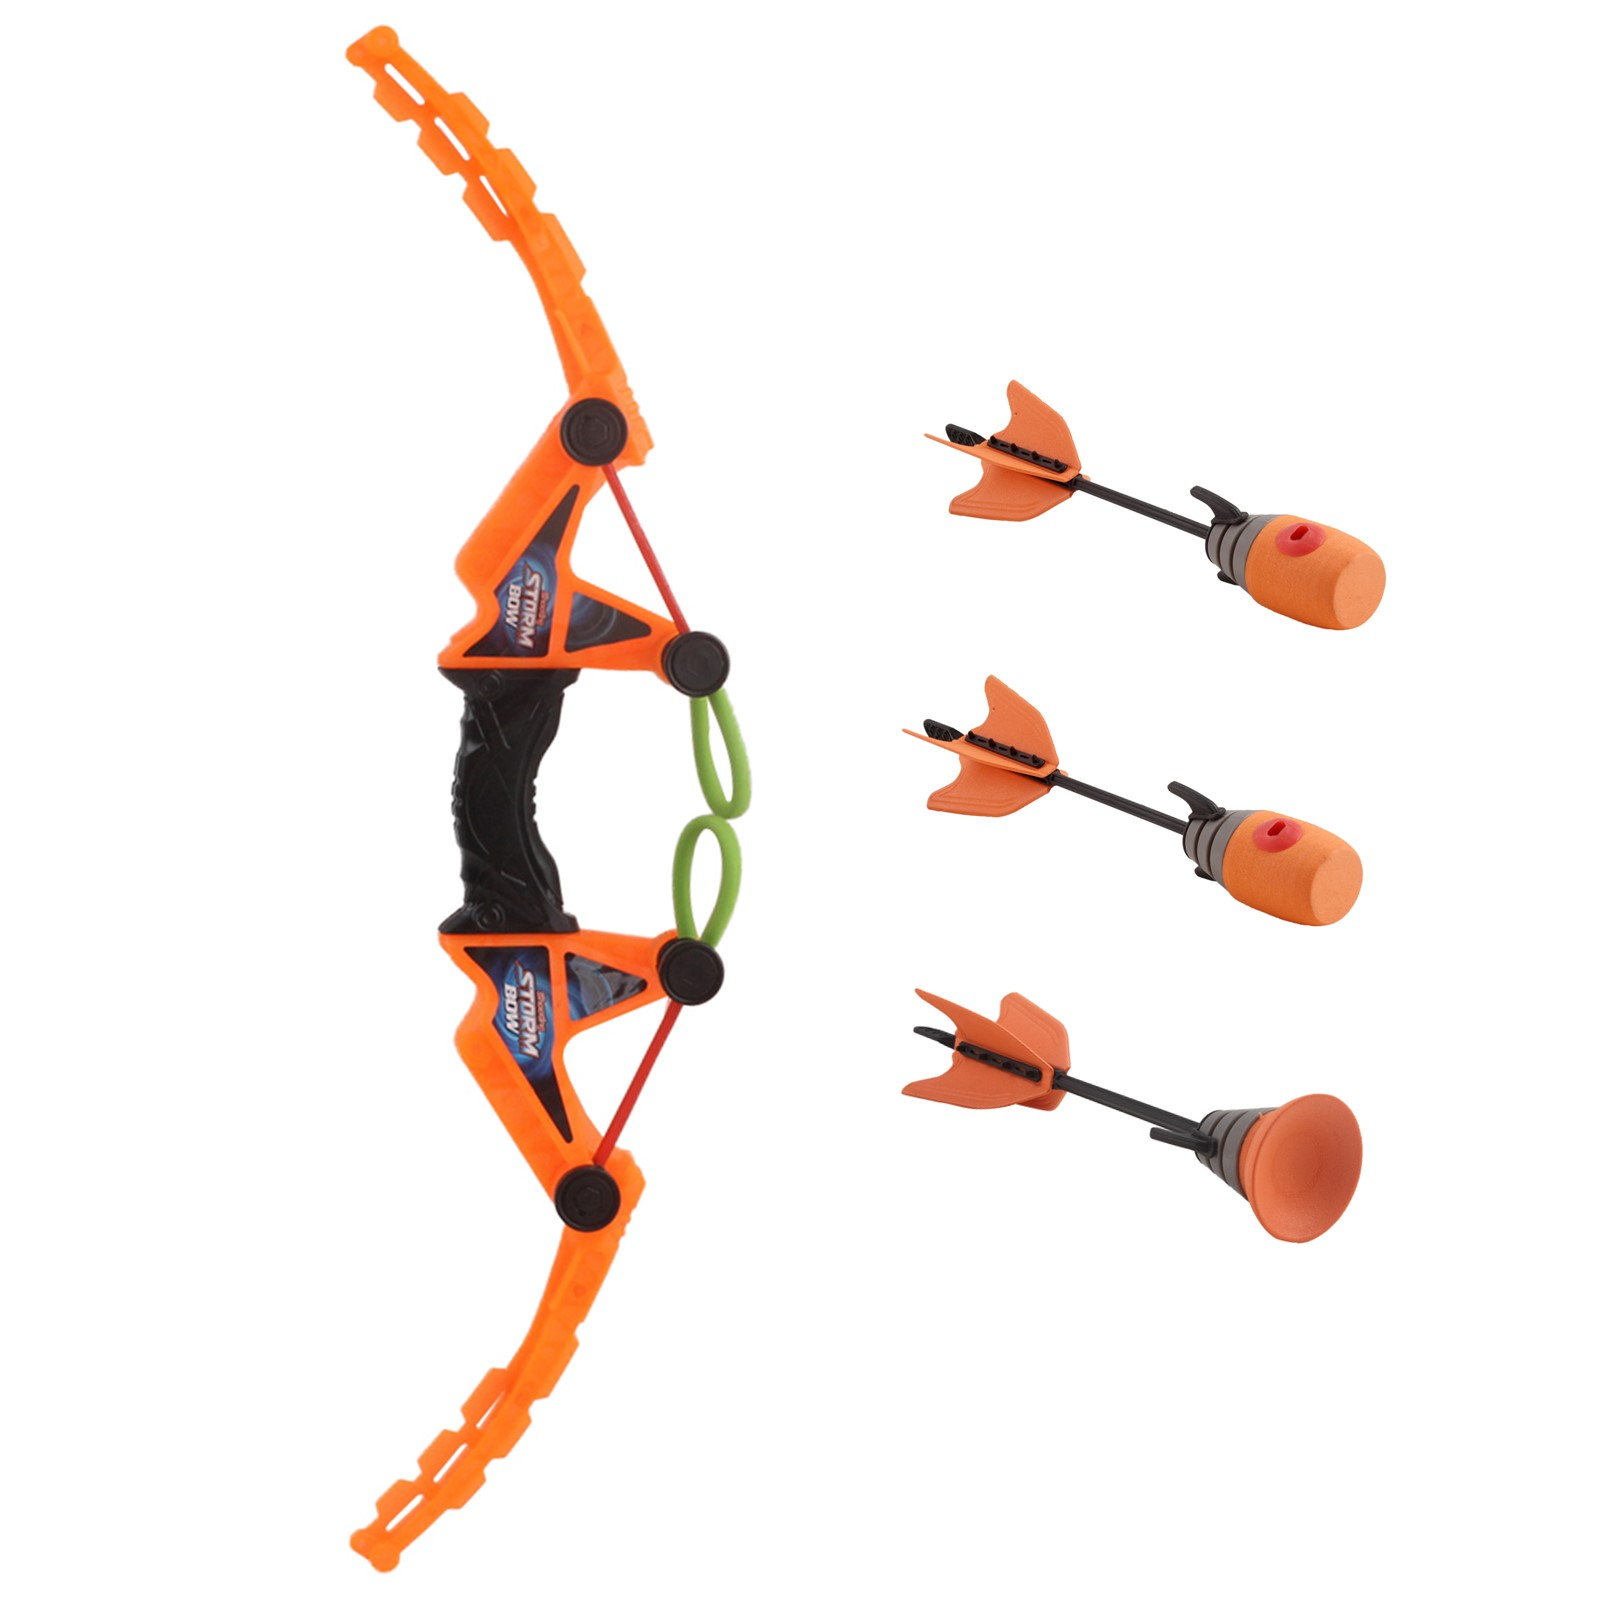 Storm Bow Fast Load With Suction Cup And Whistle Arrows Archery Activity Air Action Fun Outdoor Sports Shooting Games Orange Color